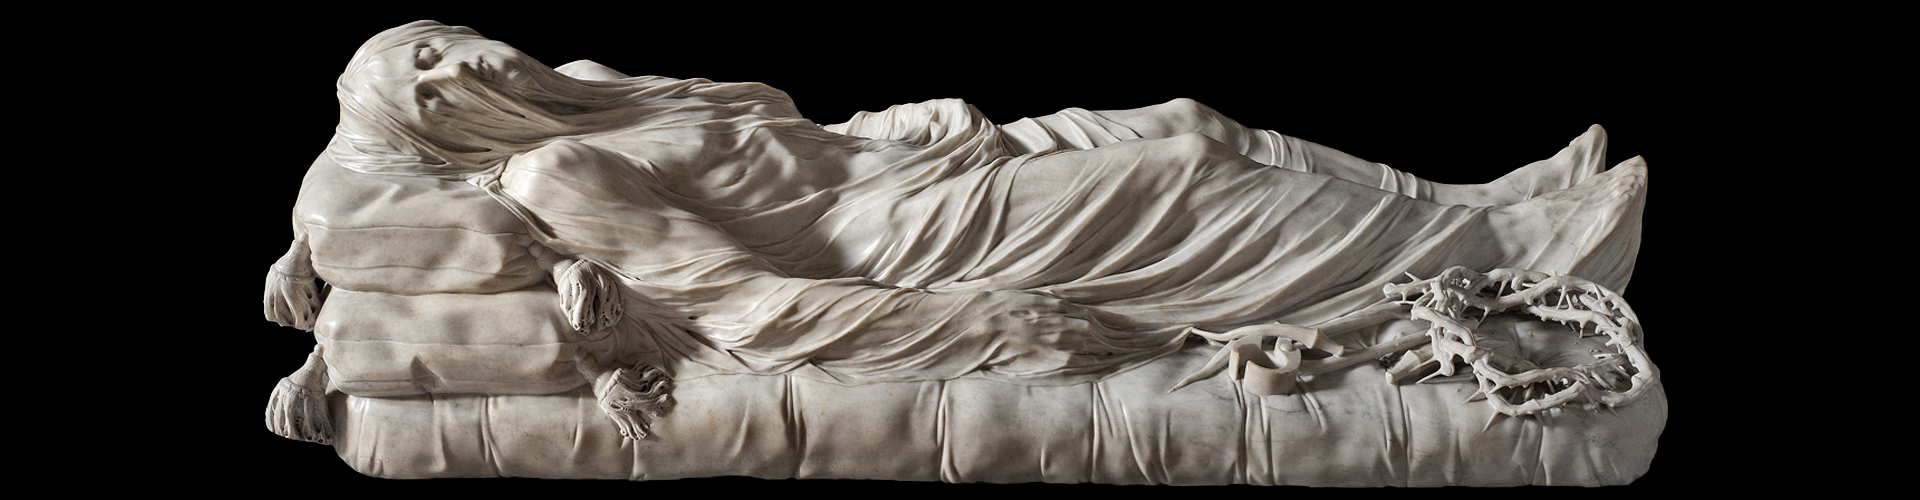 The Veiled Christ